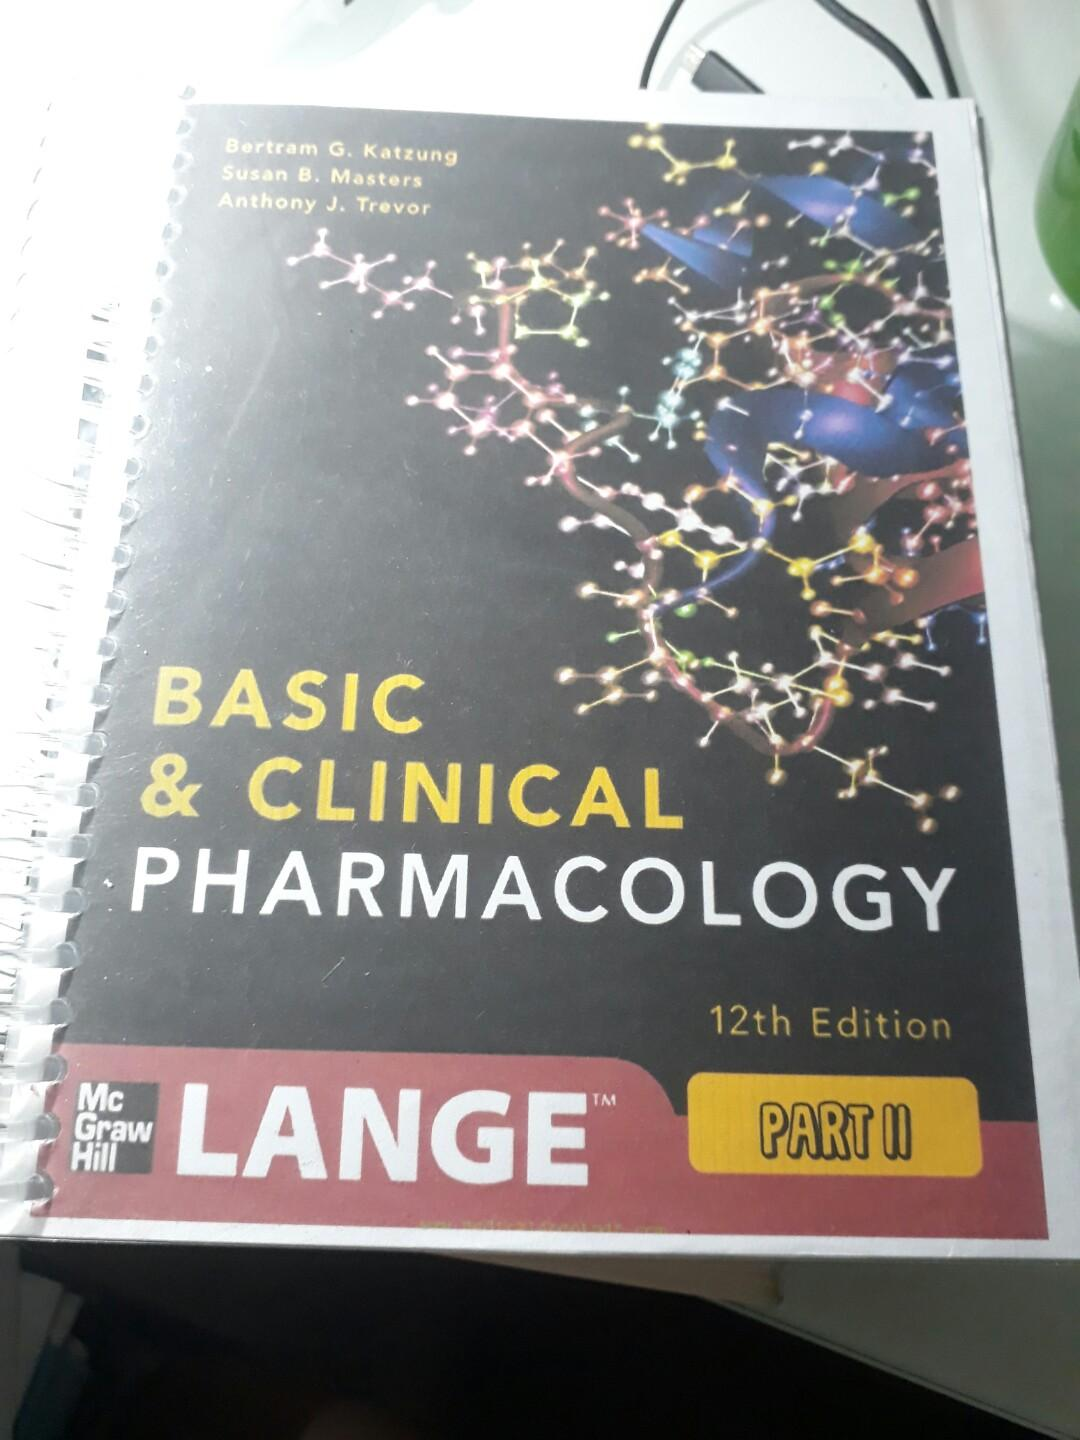 Katzung Basic and Clinical Pharmacology 12th edition - divided into 3 volumes